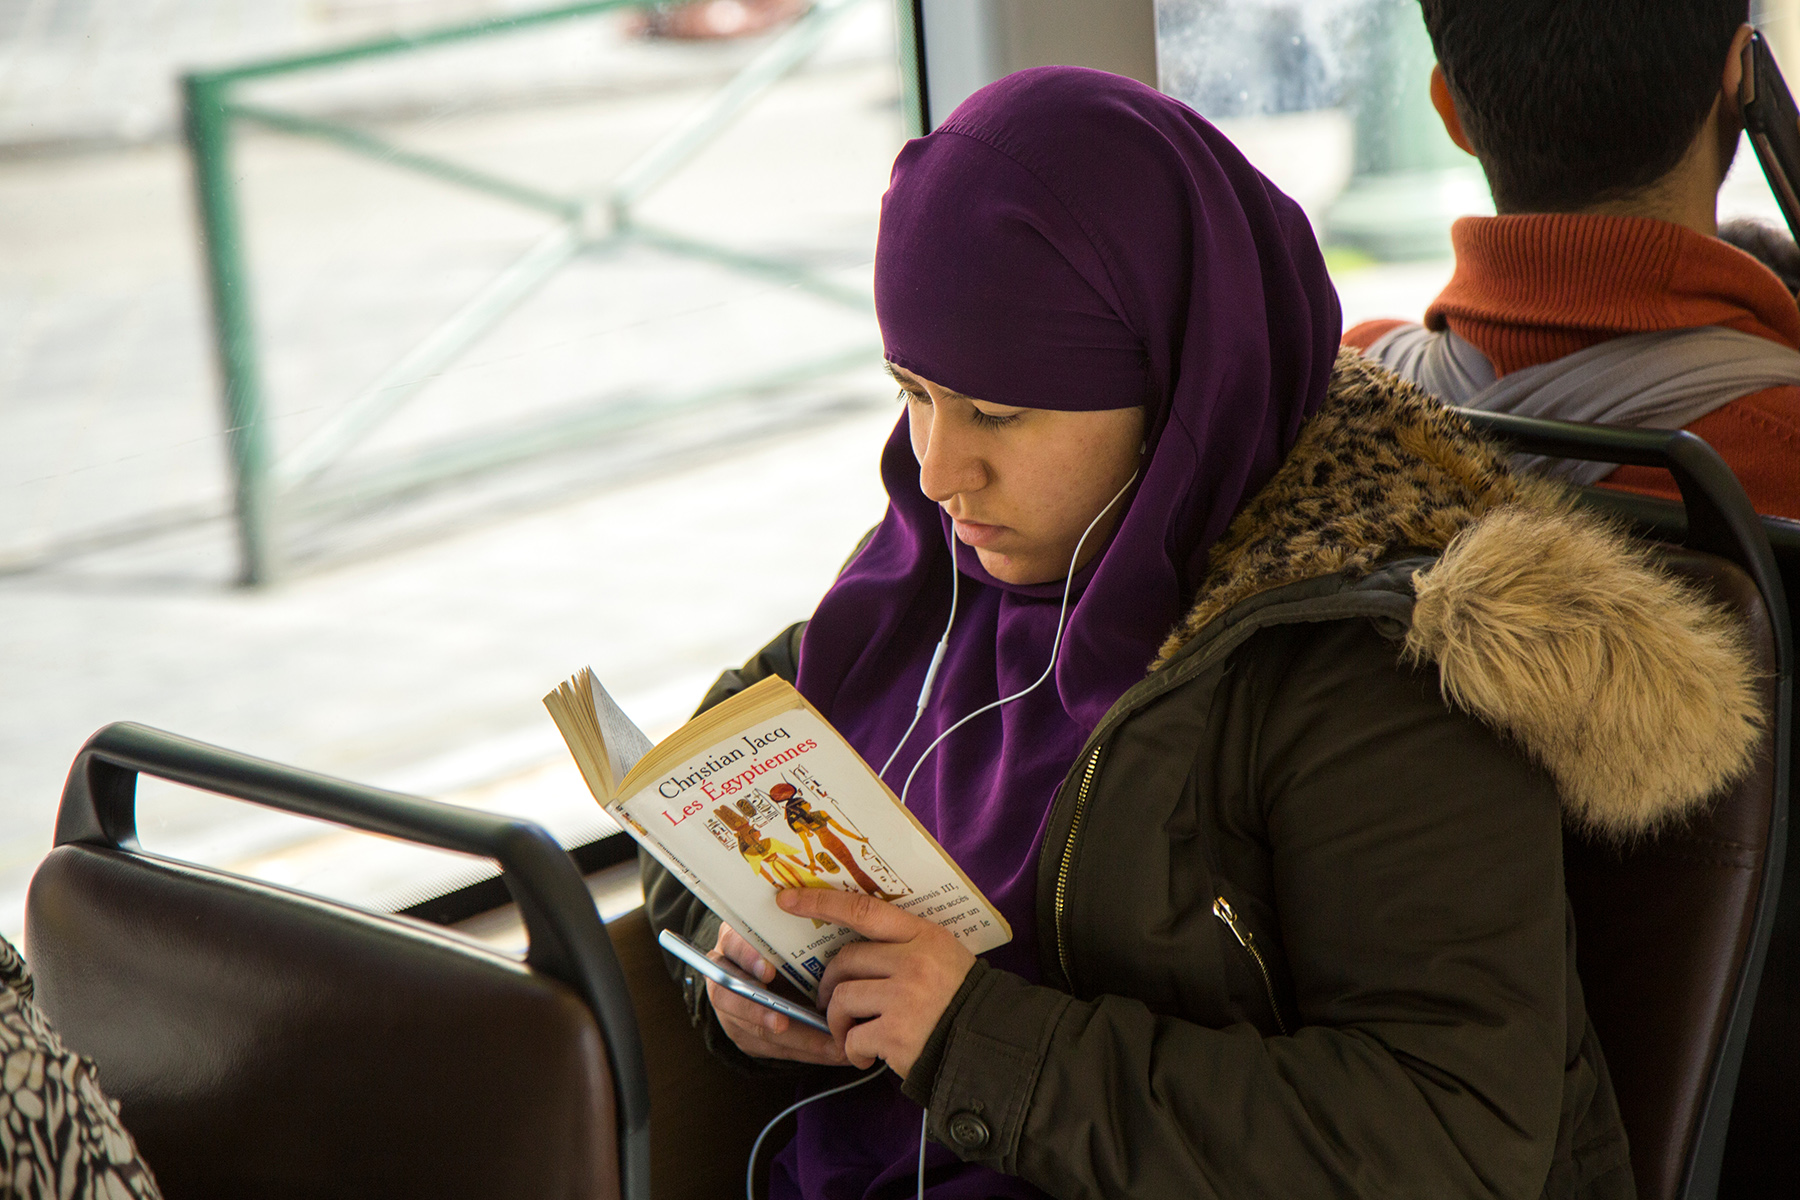 Muslim student reading a textbook